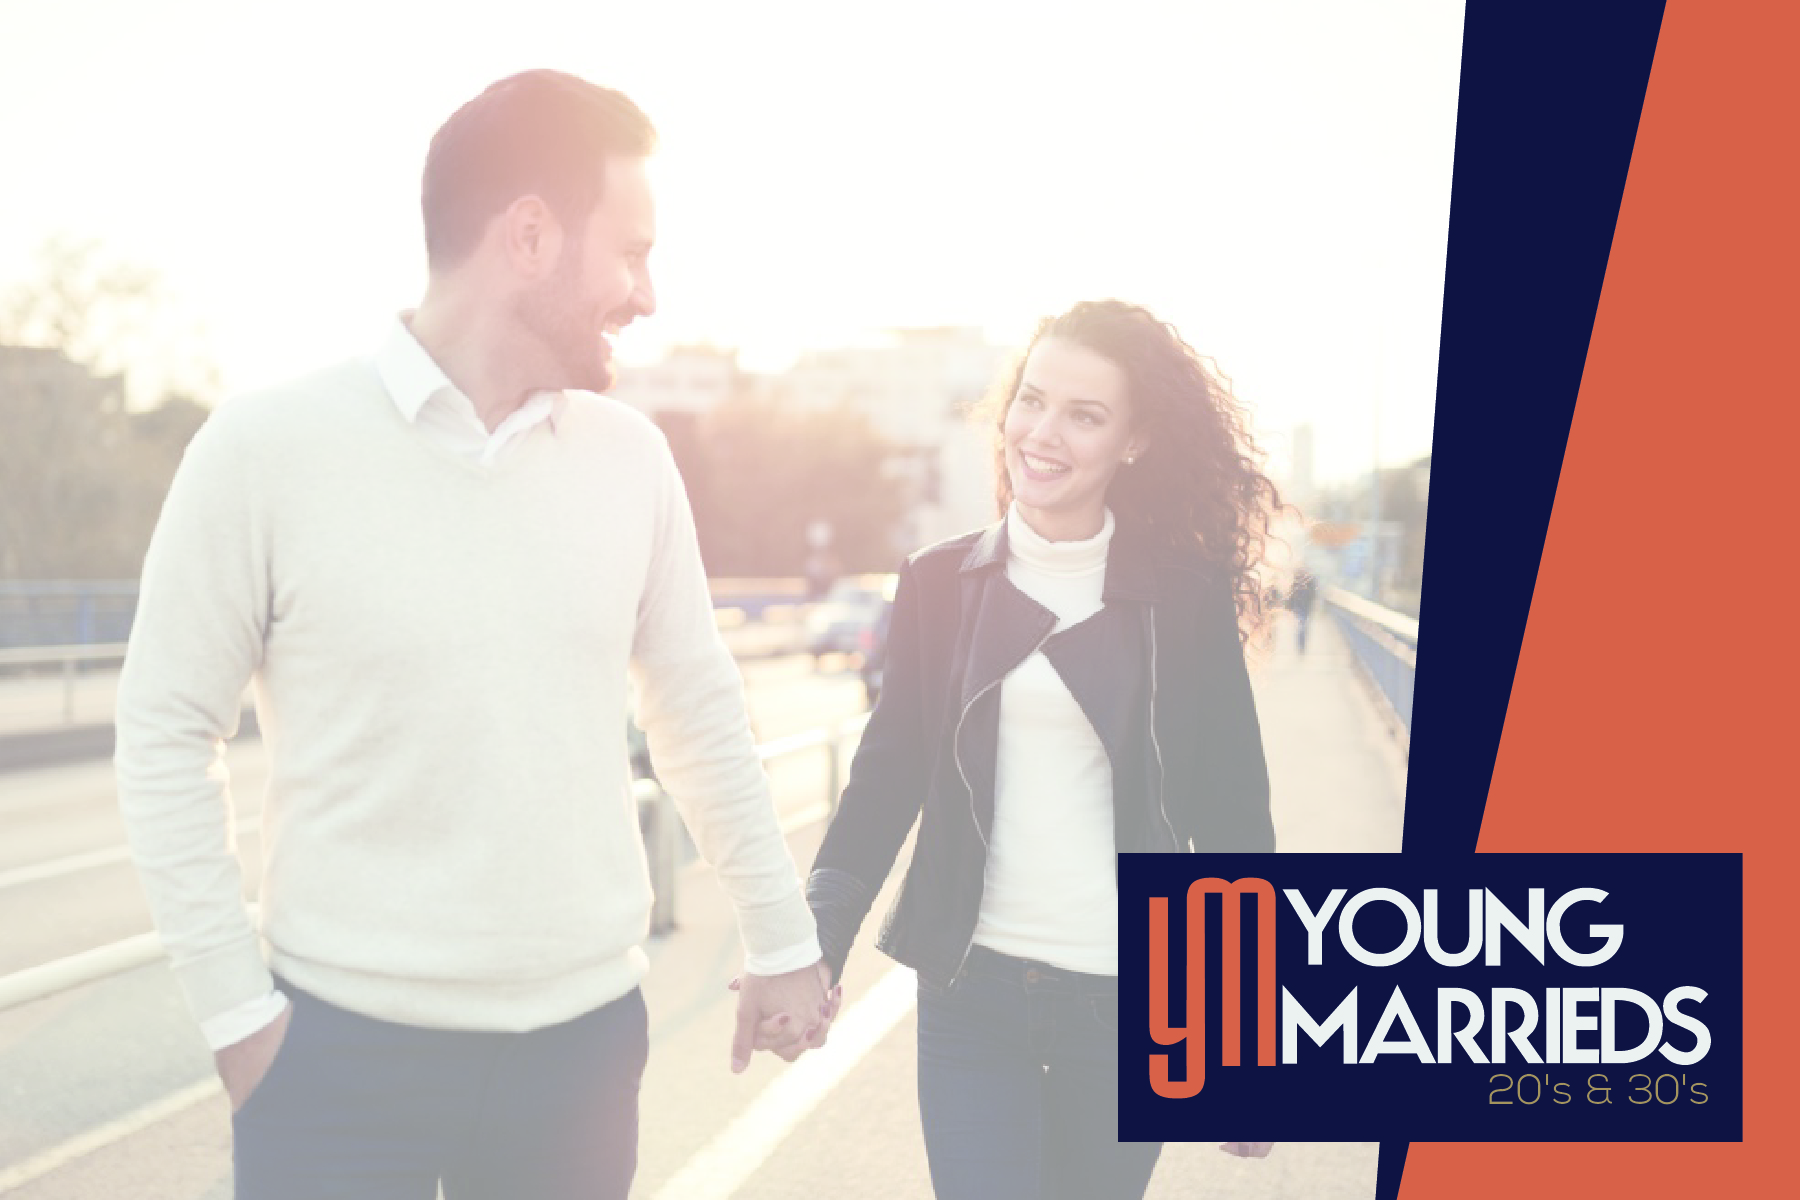 Engaged or married, we invite you to the YM asheville class